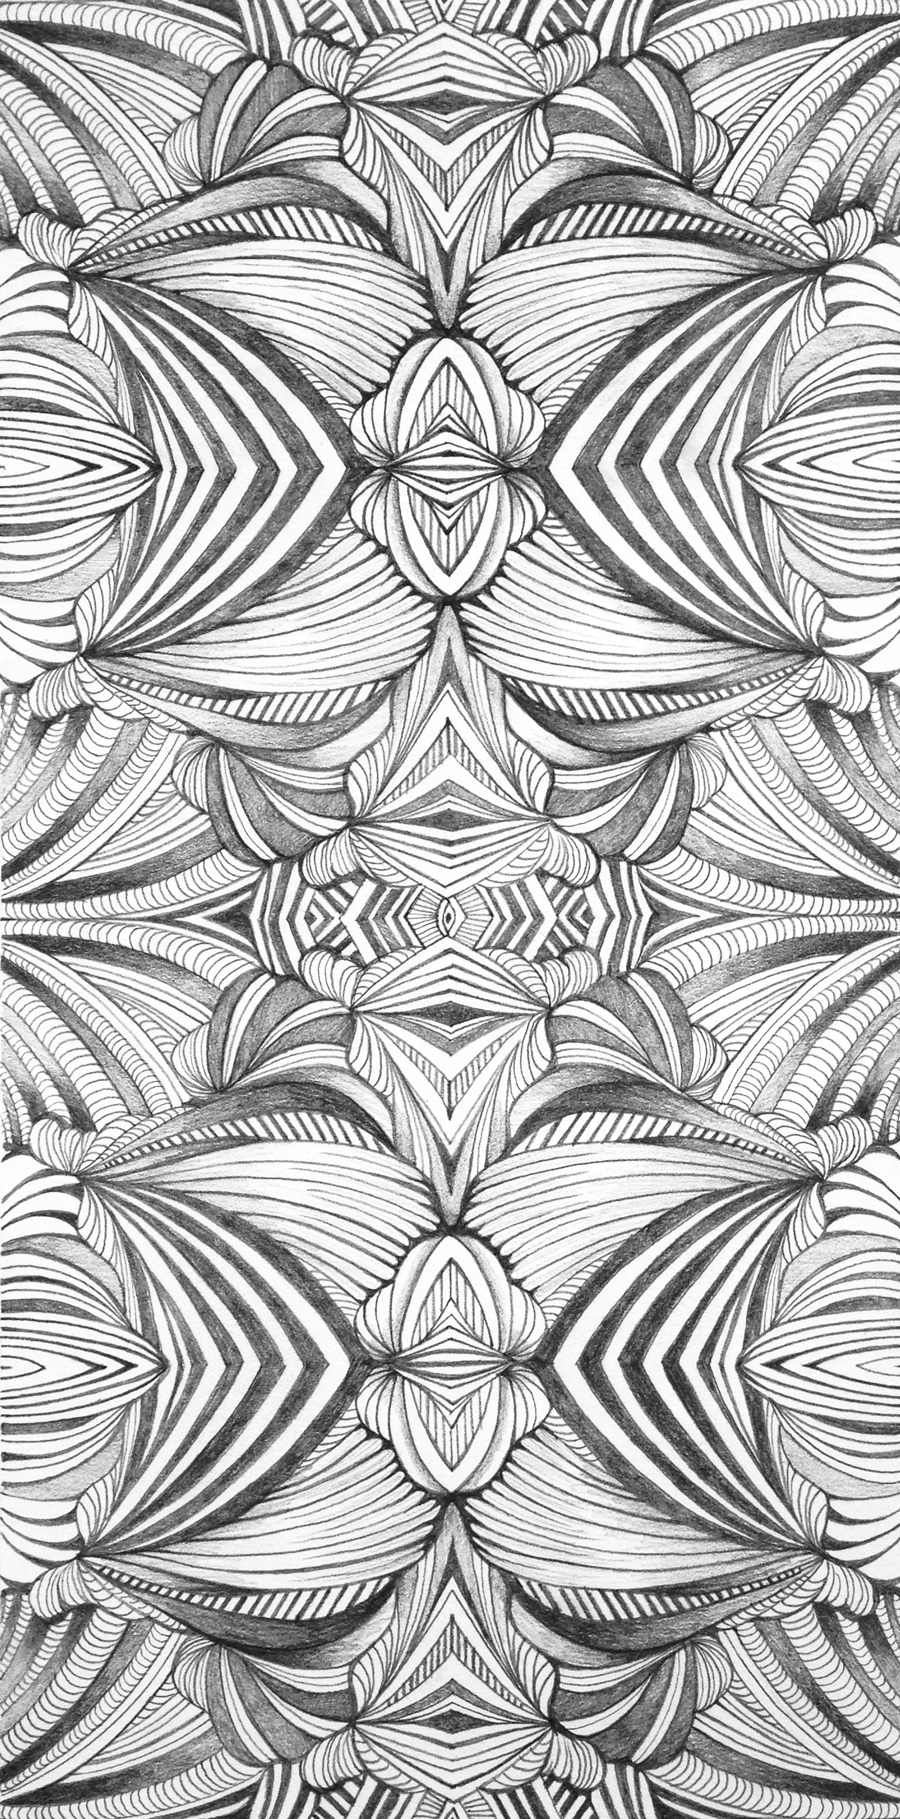 Vaulted Tessellation